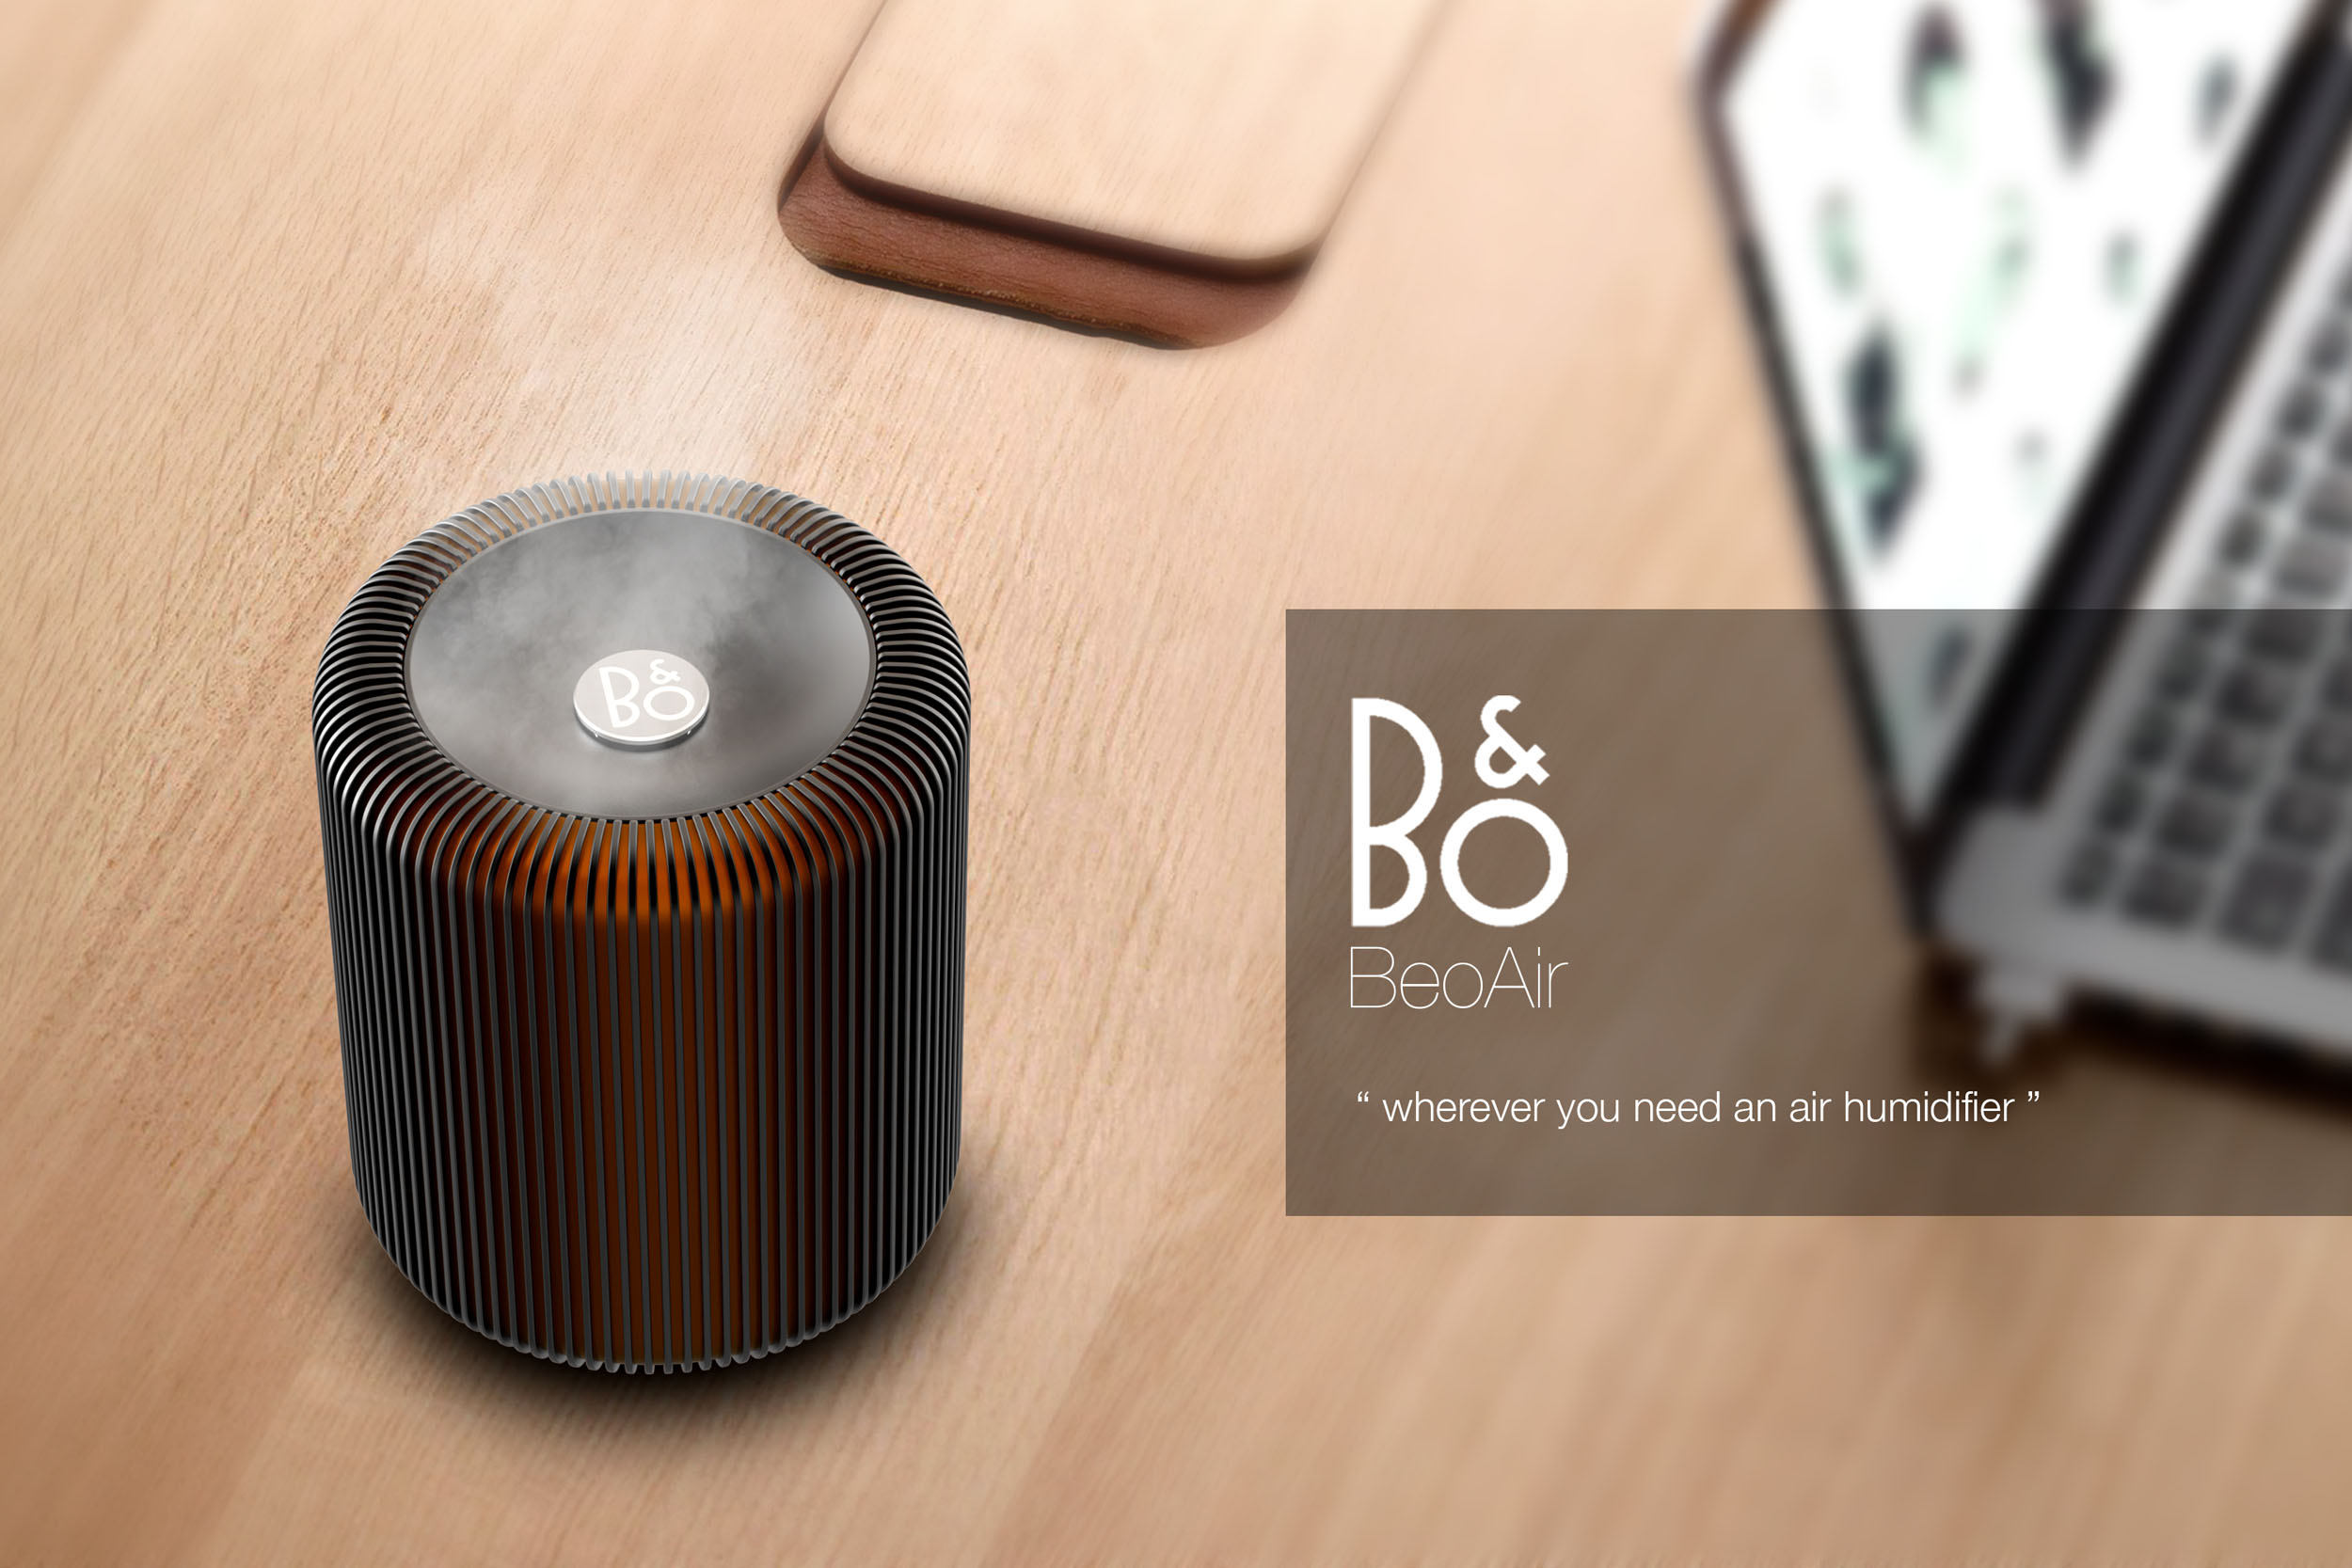 Beoair Air Purifier And Humidifier Concept Proposal For Bang &